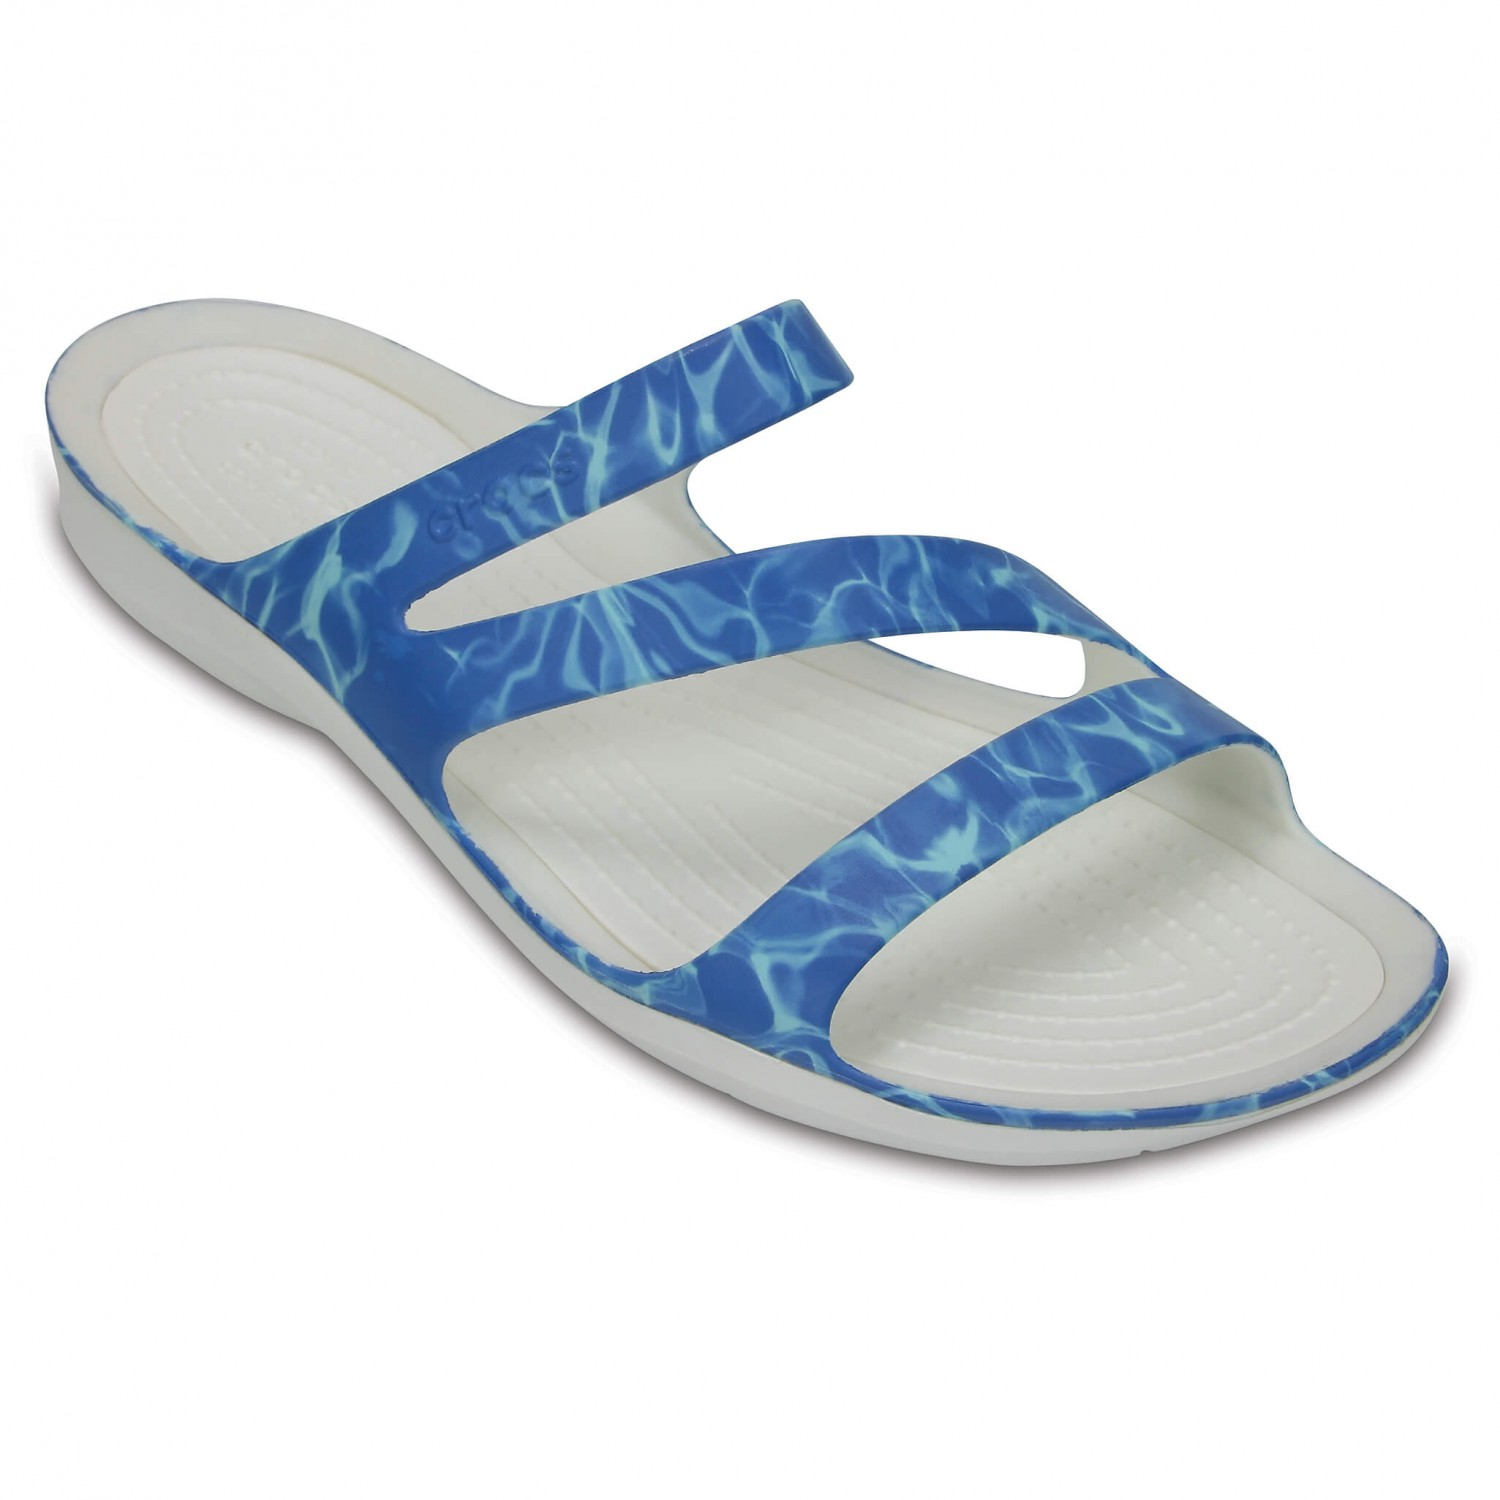 Crocs Swiftwater Graphic Sandal